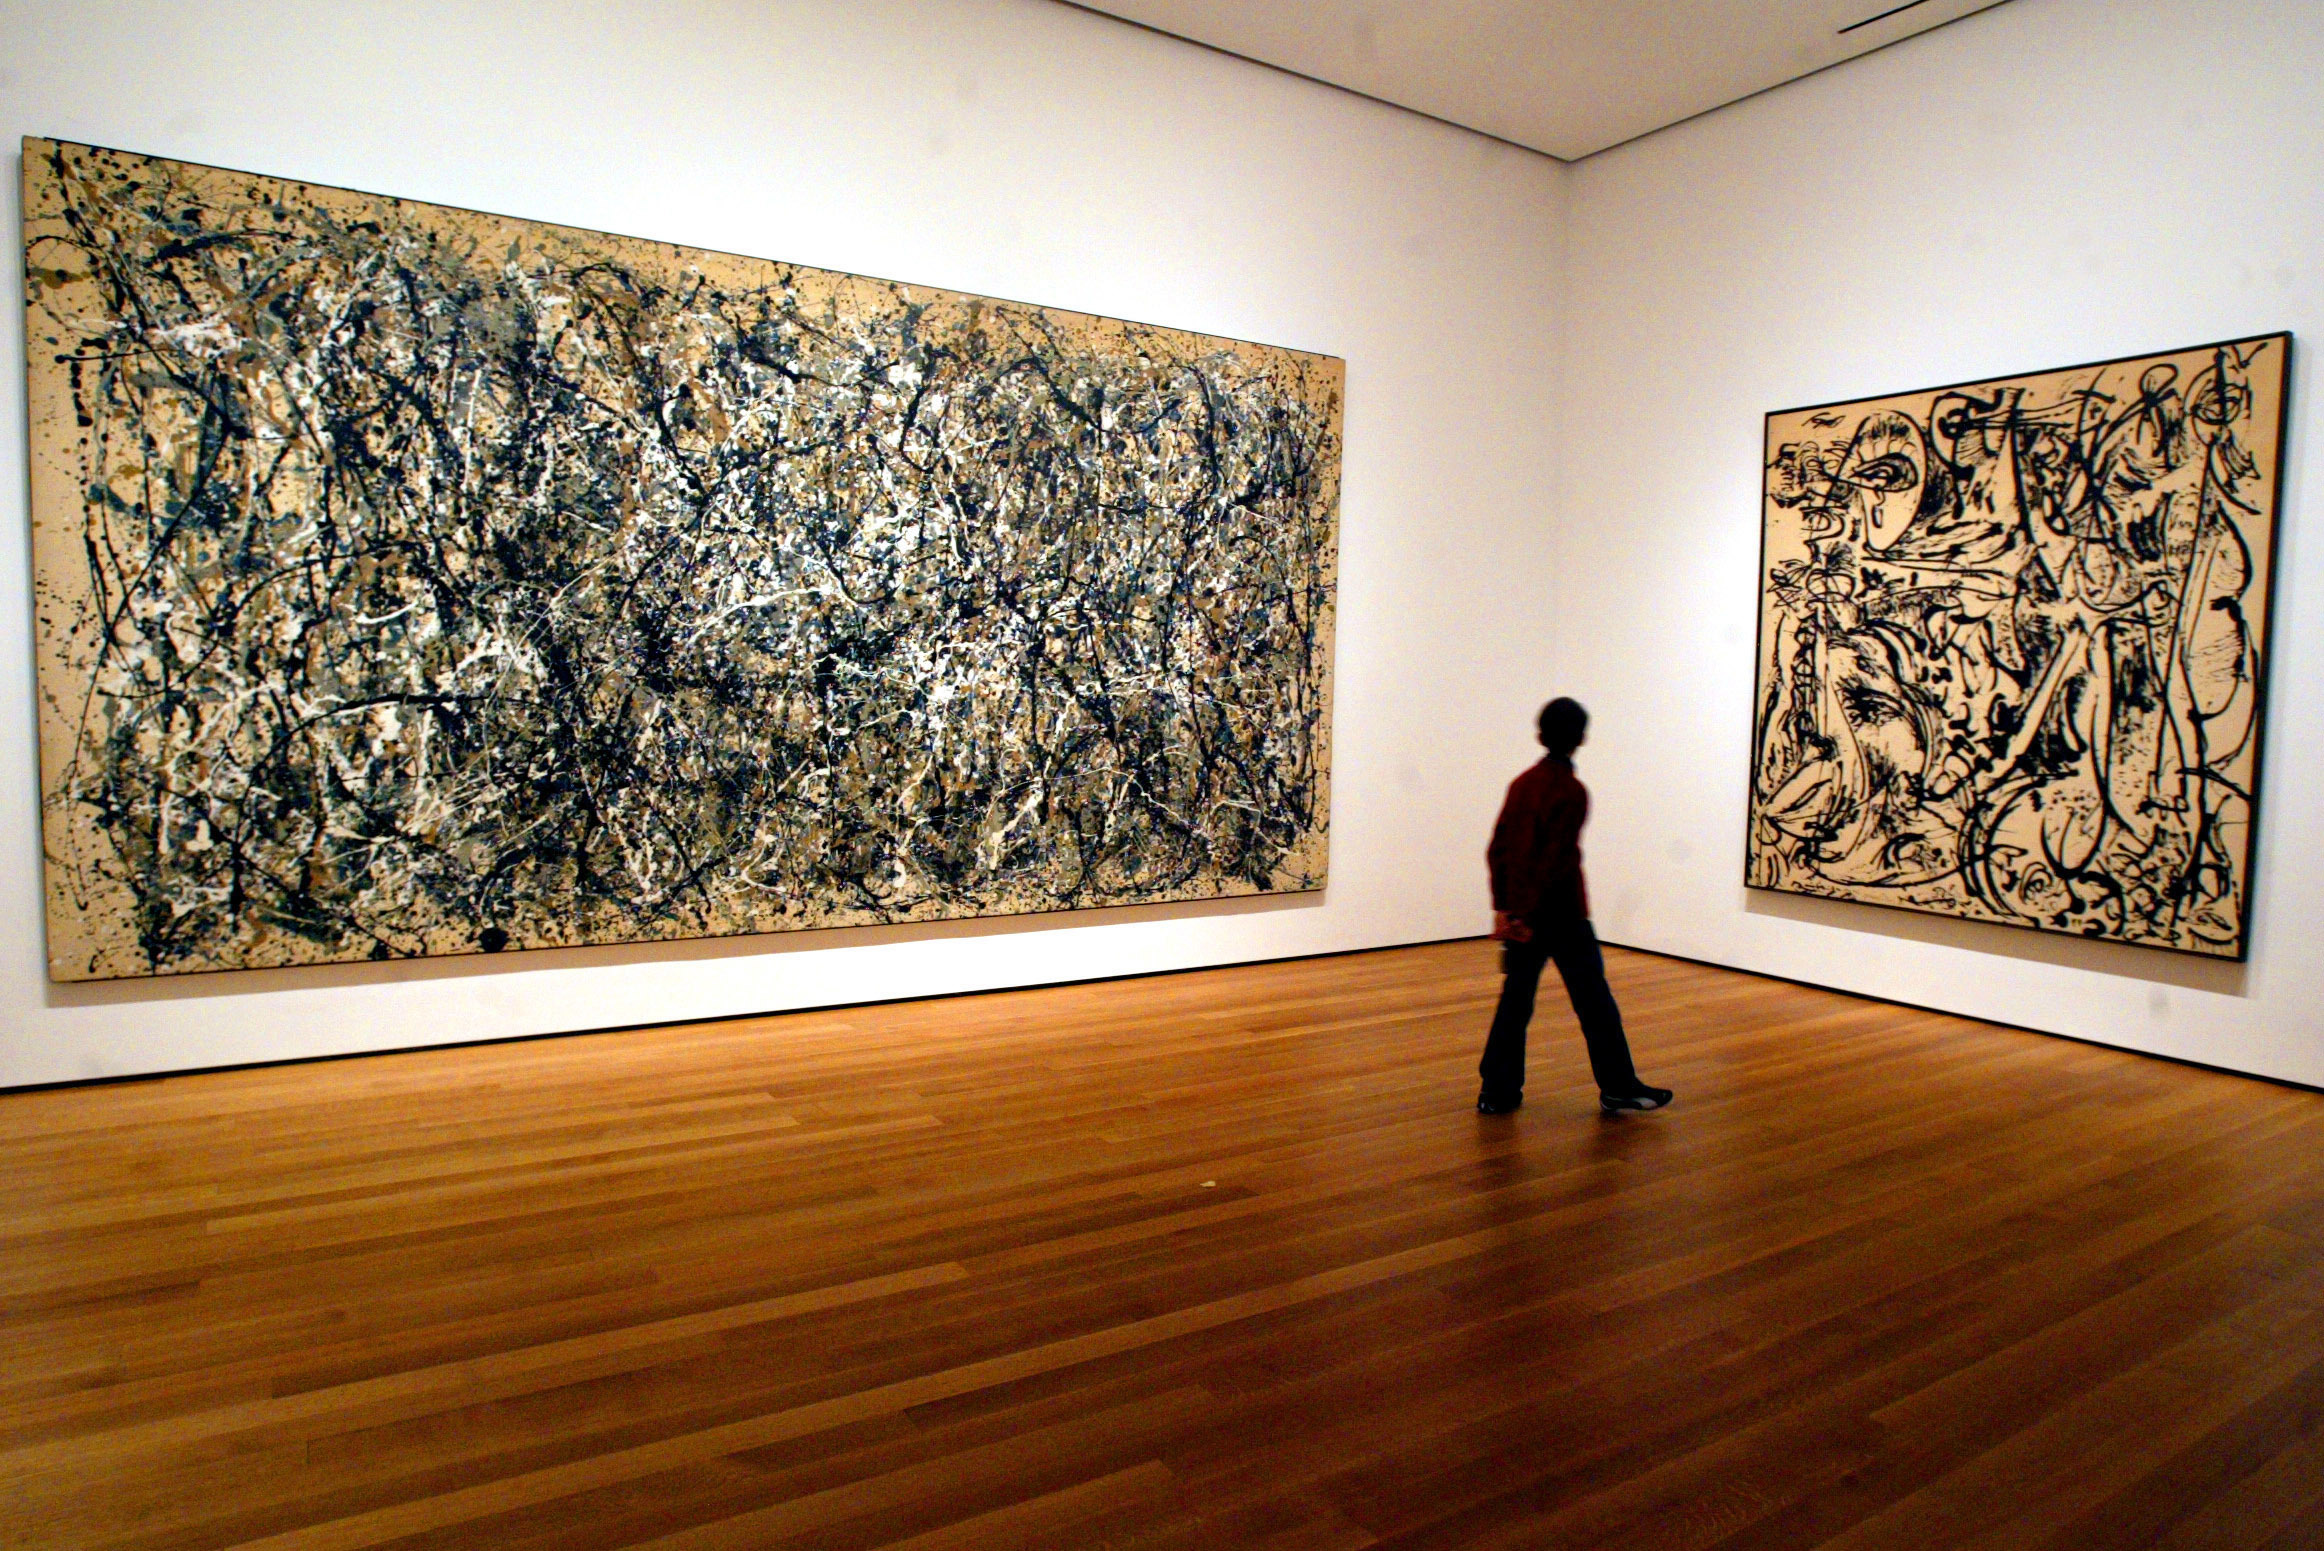 jackson pollock painting analysis Pollock's innovative abstractions evoke the power of nature, but also suggest man's entrapment in an anxious mind and body, and in the frightening modern world.